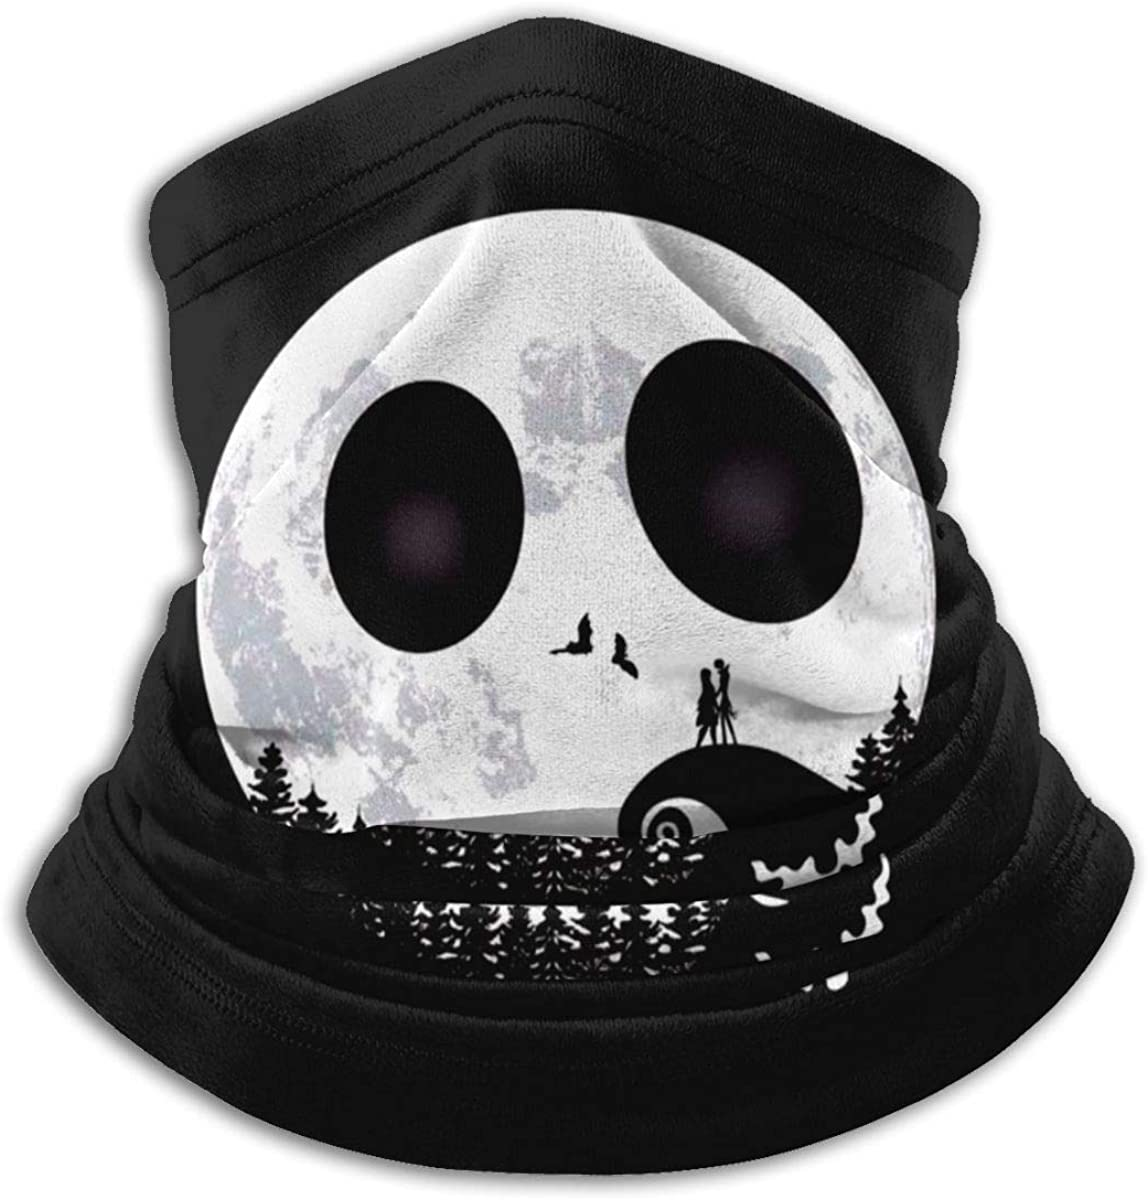 Jack Skellington Outdoor Mouth Mask Windproof Sports Face Mask Dust Shield Scarf Men Woman Neck Warmer